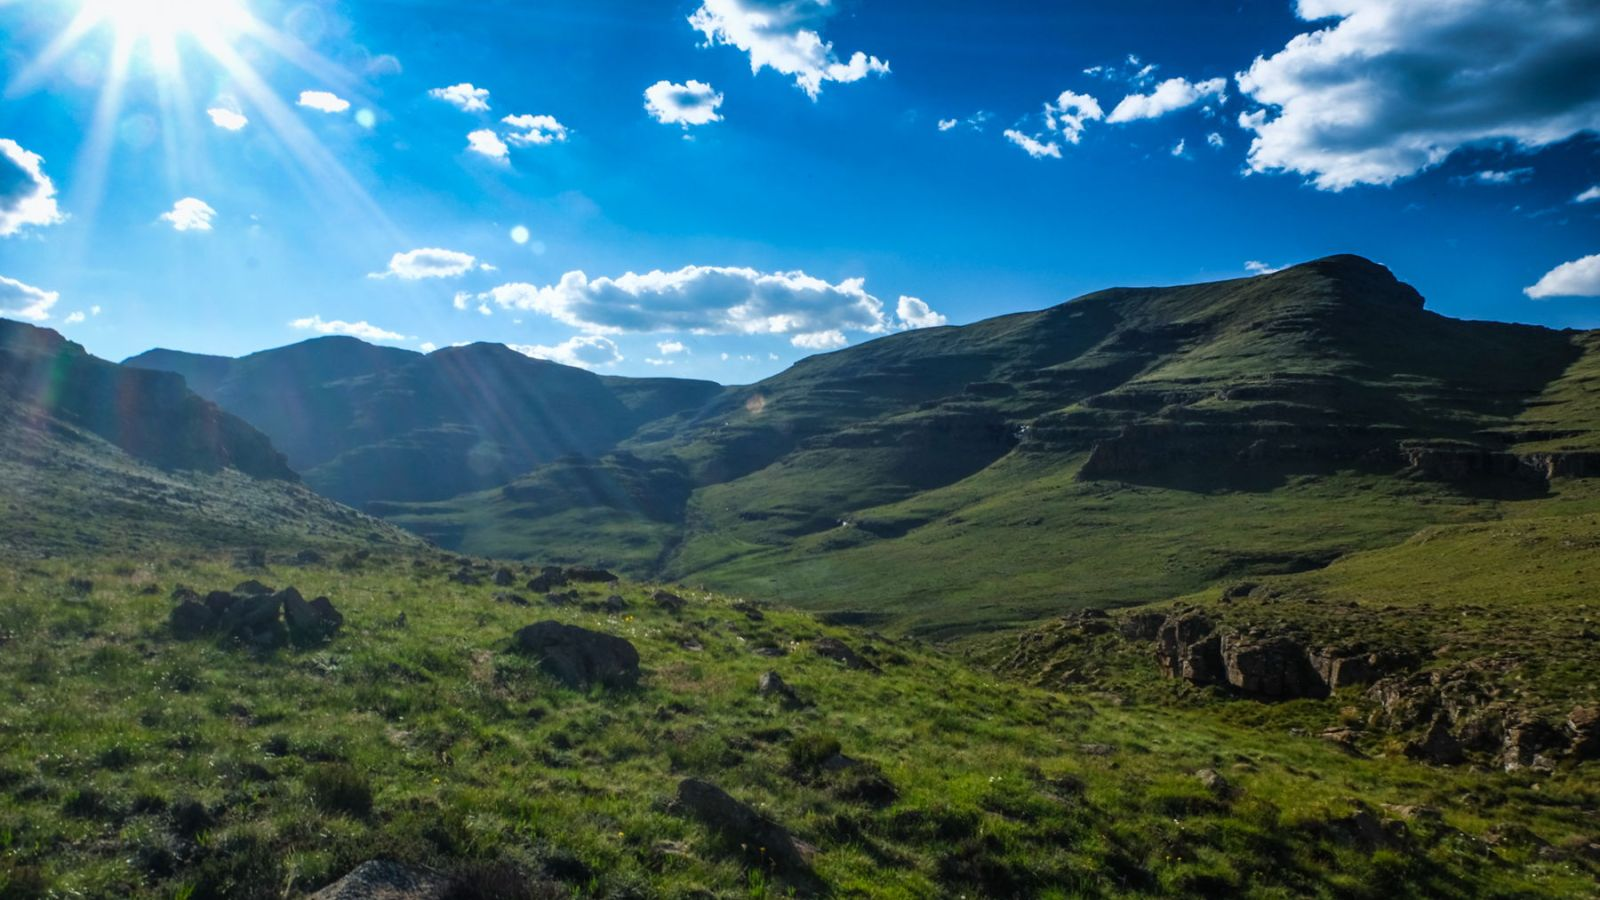 photo of the drakensberg mountains with blue sky